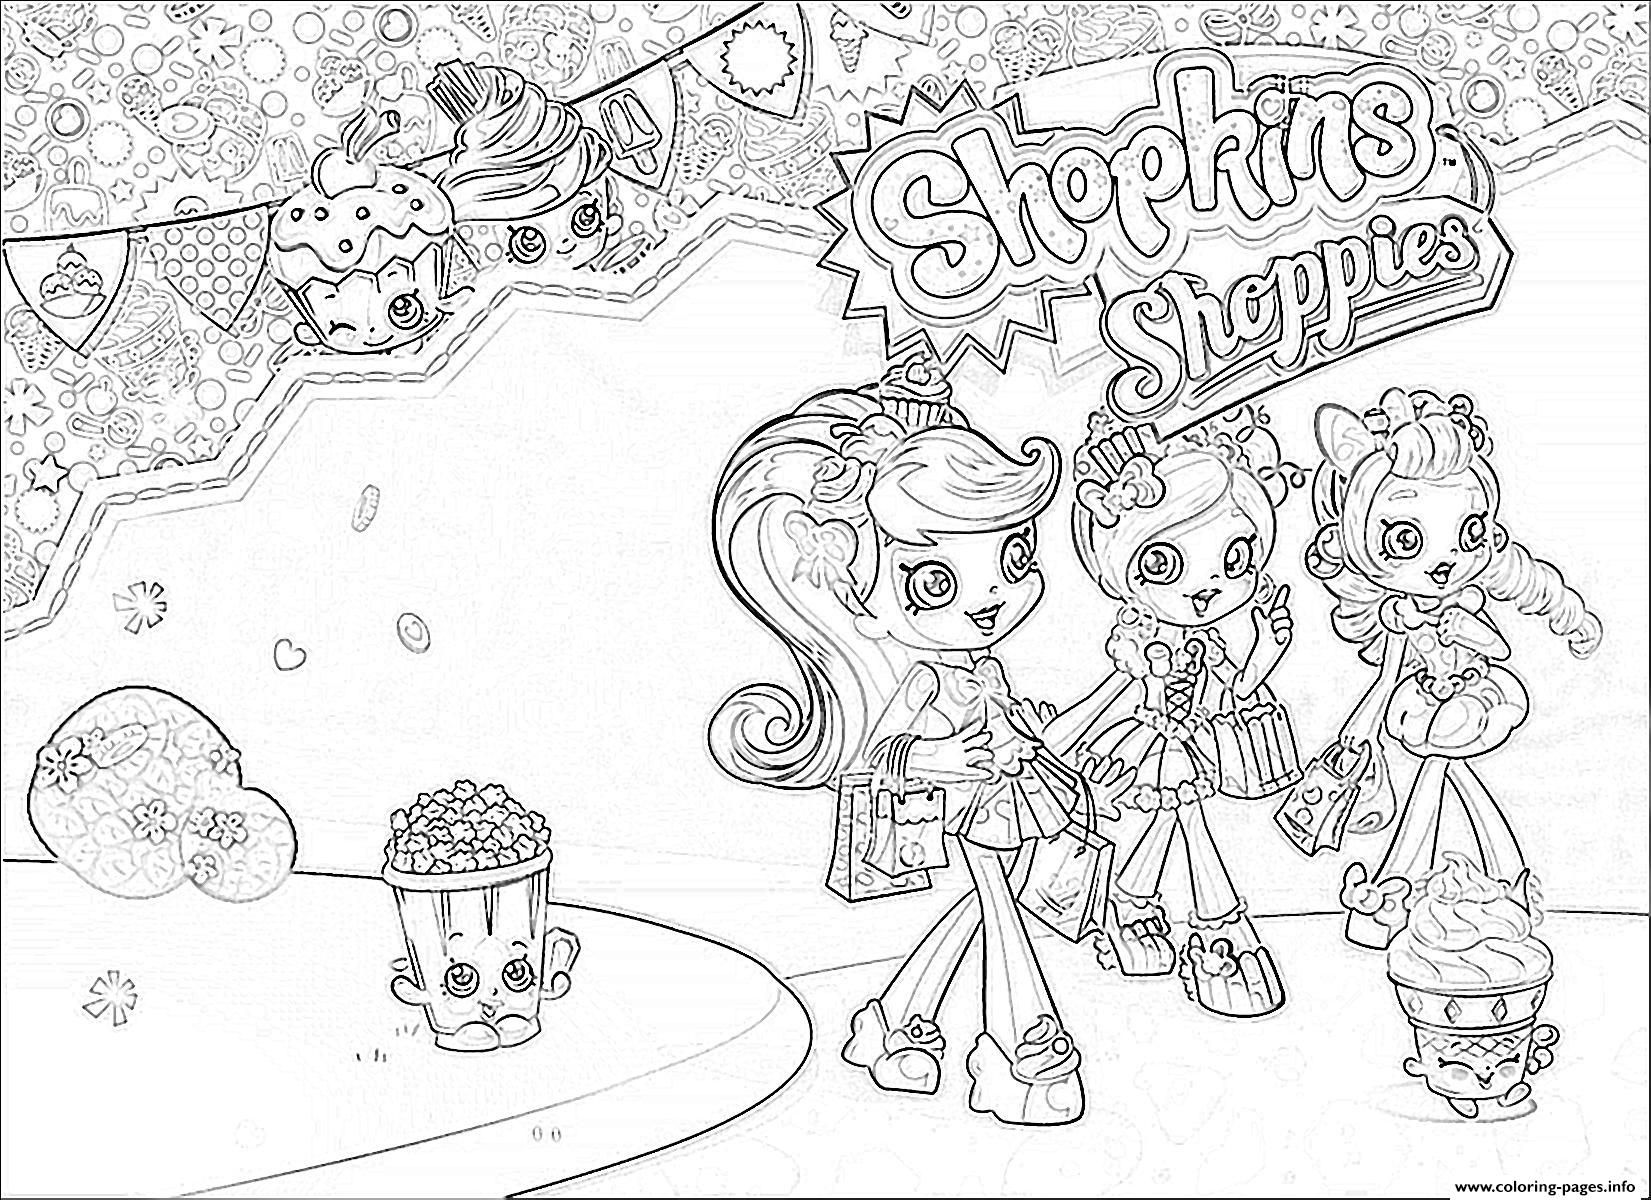 Print shopkins shoppies girls coloring pages | Favorite Places ...